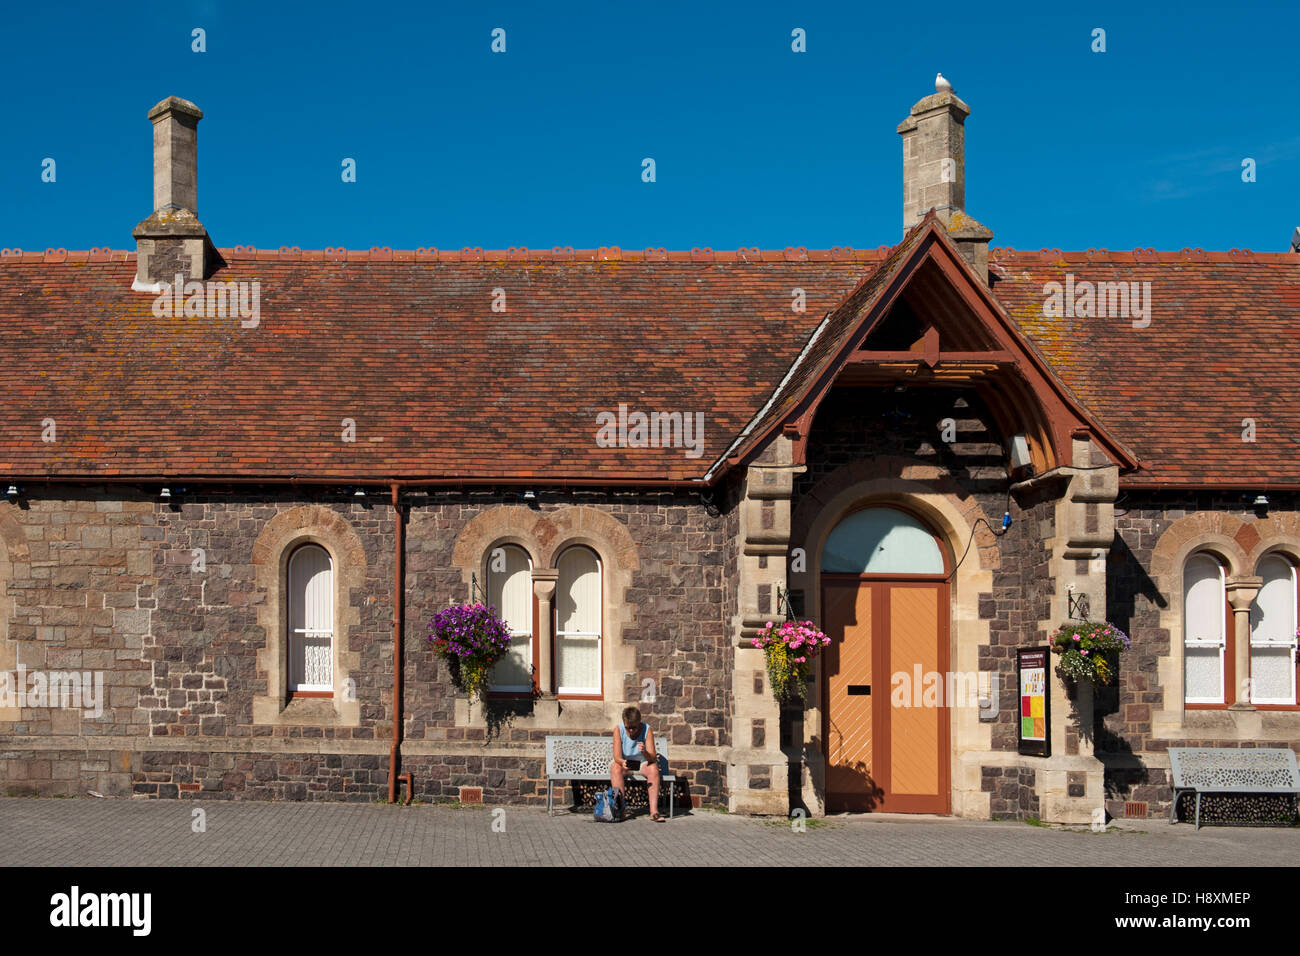 Minehead Railway Station, Terminus of the West Somerset Railway, UK Stock Photo